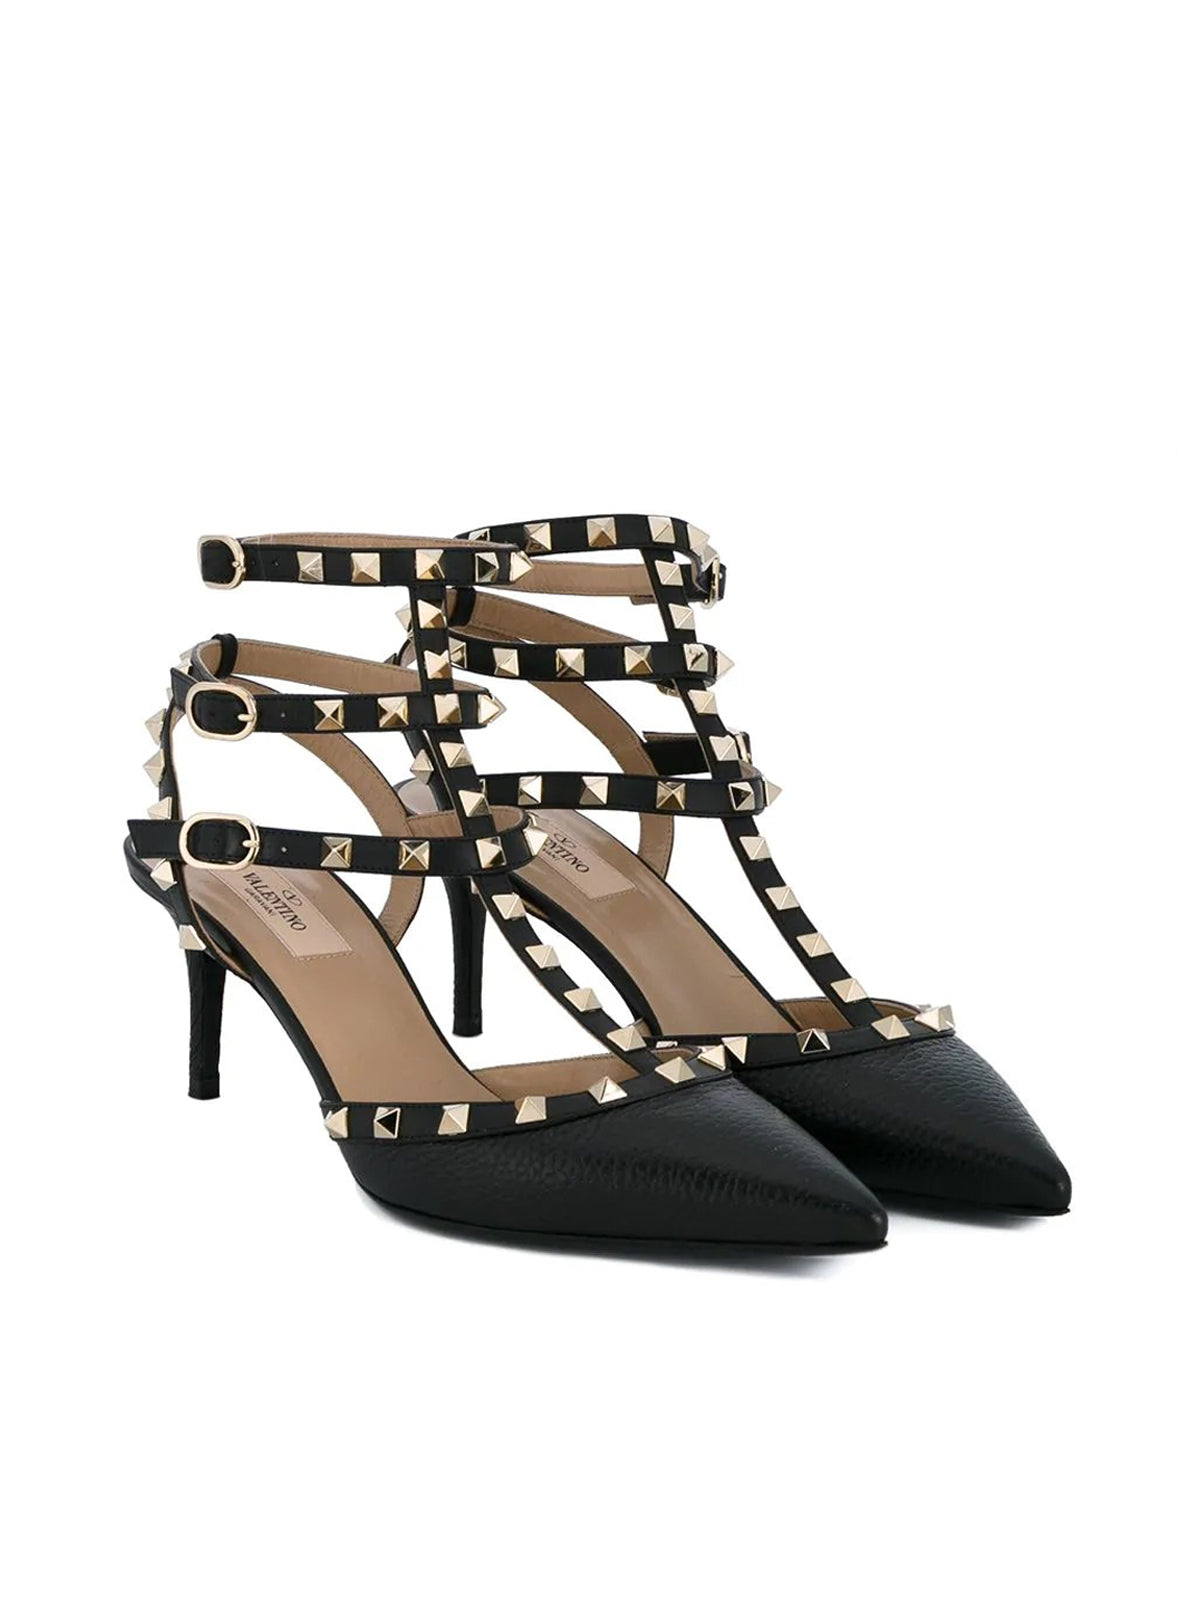 Rockstud heeled pumps